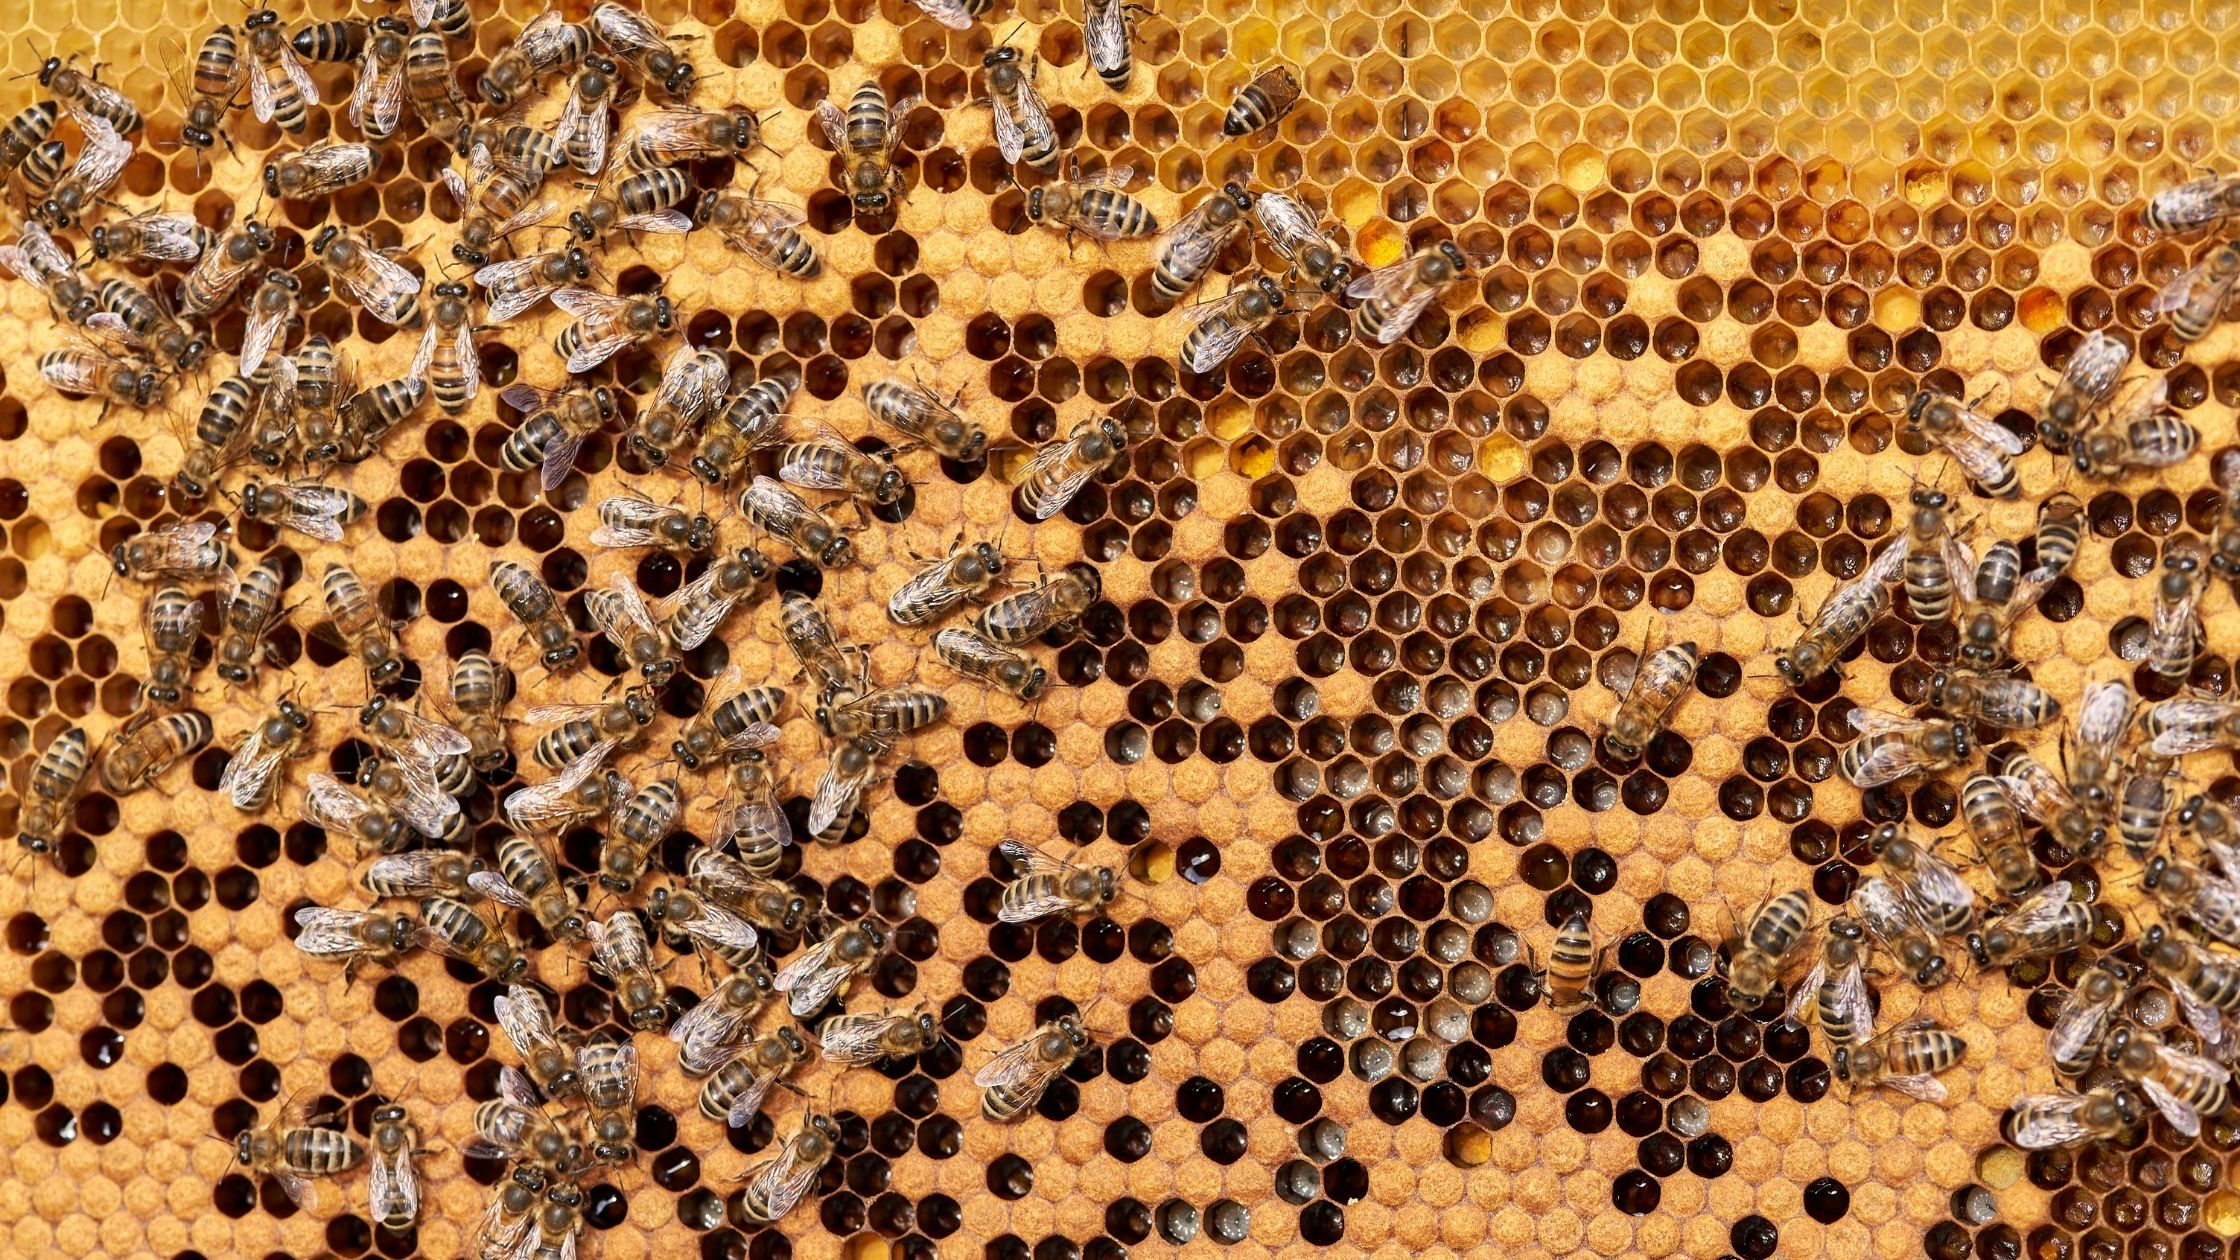 5 Little-Known Facts about Bees in Singapore